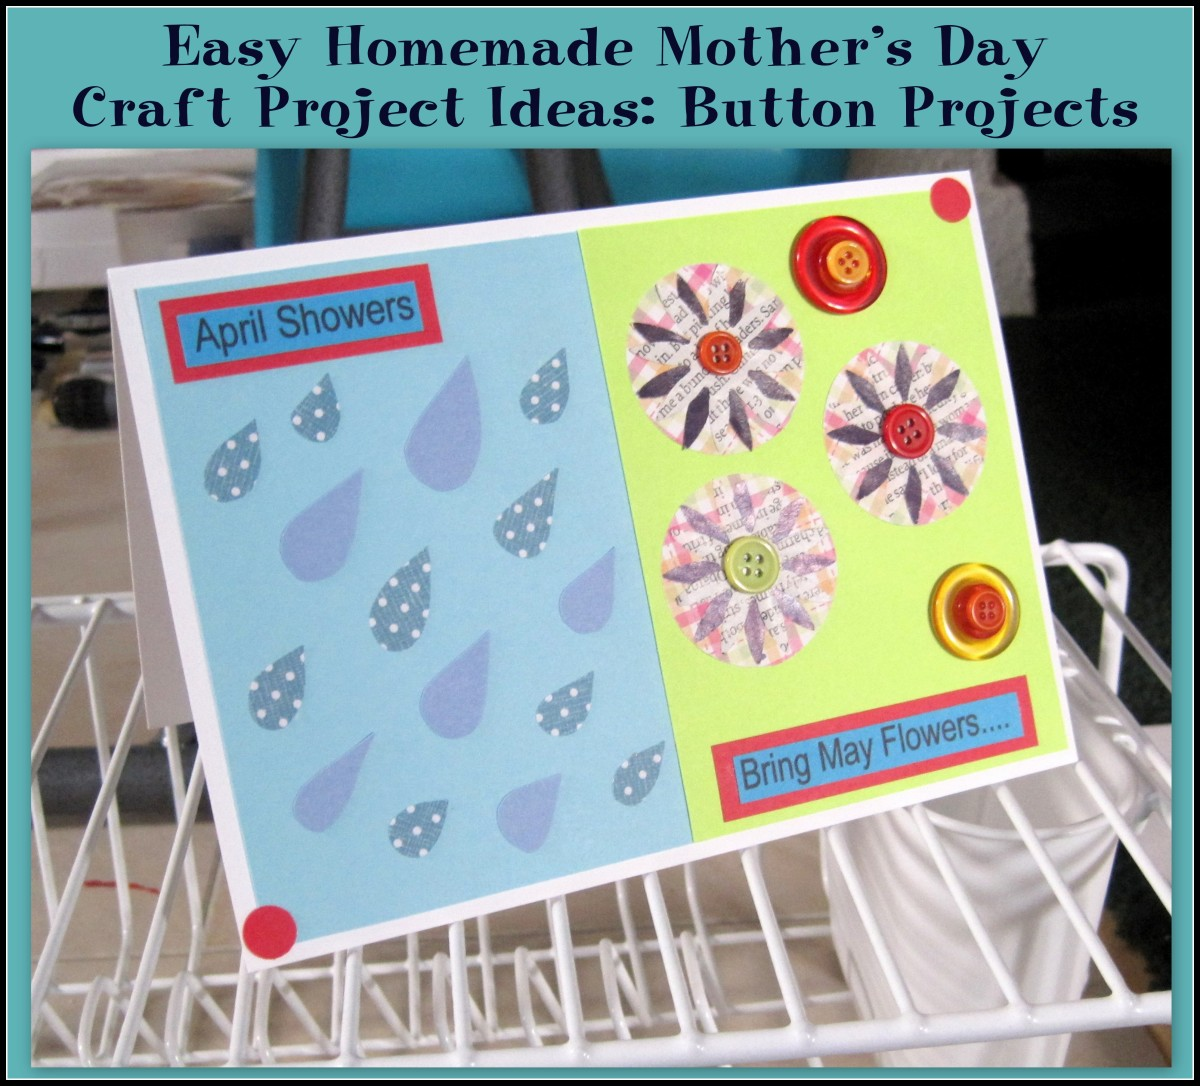 Easy Homemade Mother's Day Craft Project Ideas: Button Projects